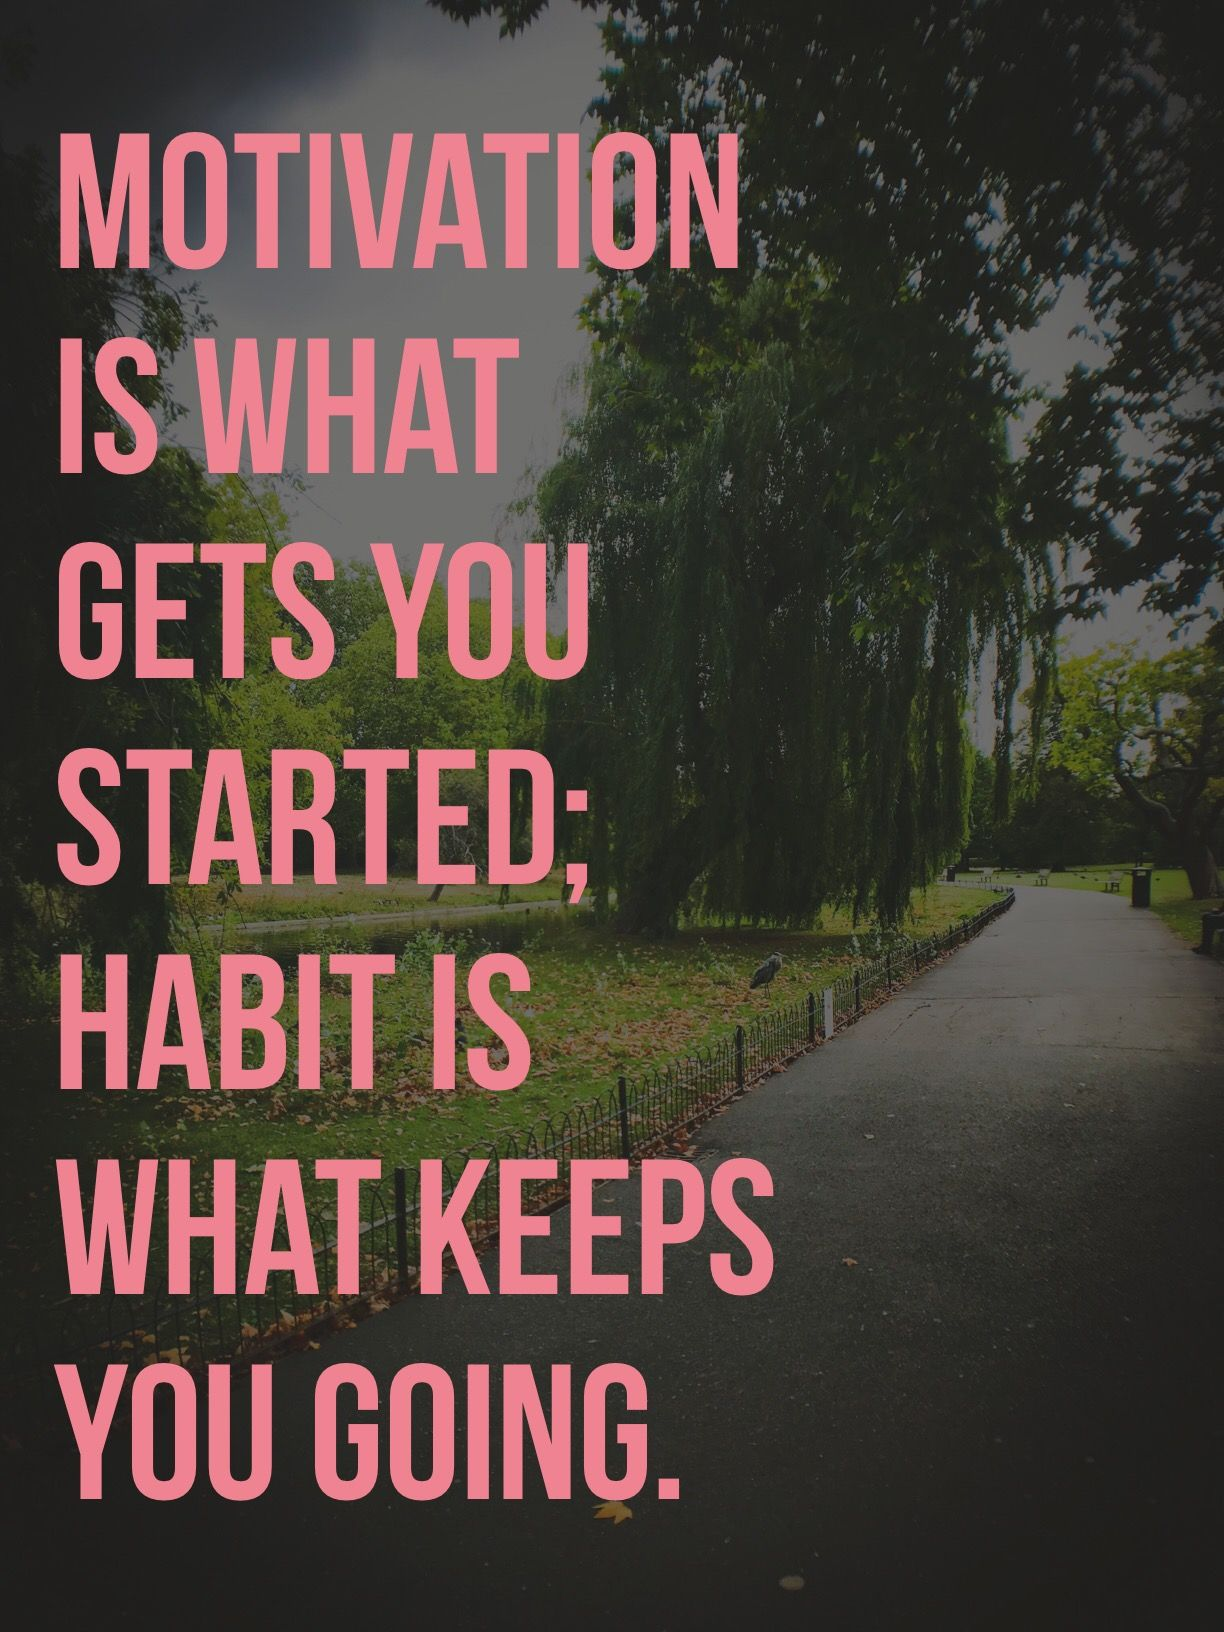 Inspirational Quote 11 23 18 Nisha Hillberg Jpg Work Quotes Funny Motivational Memes Keto Quote